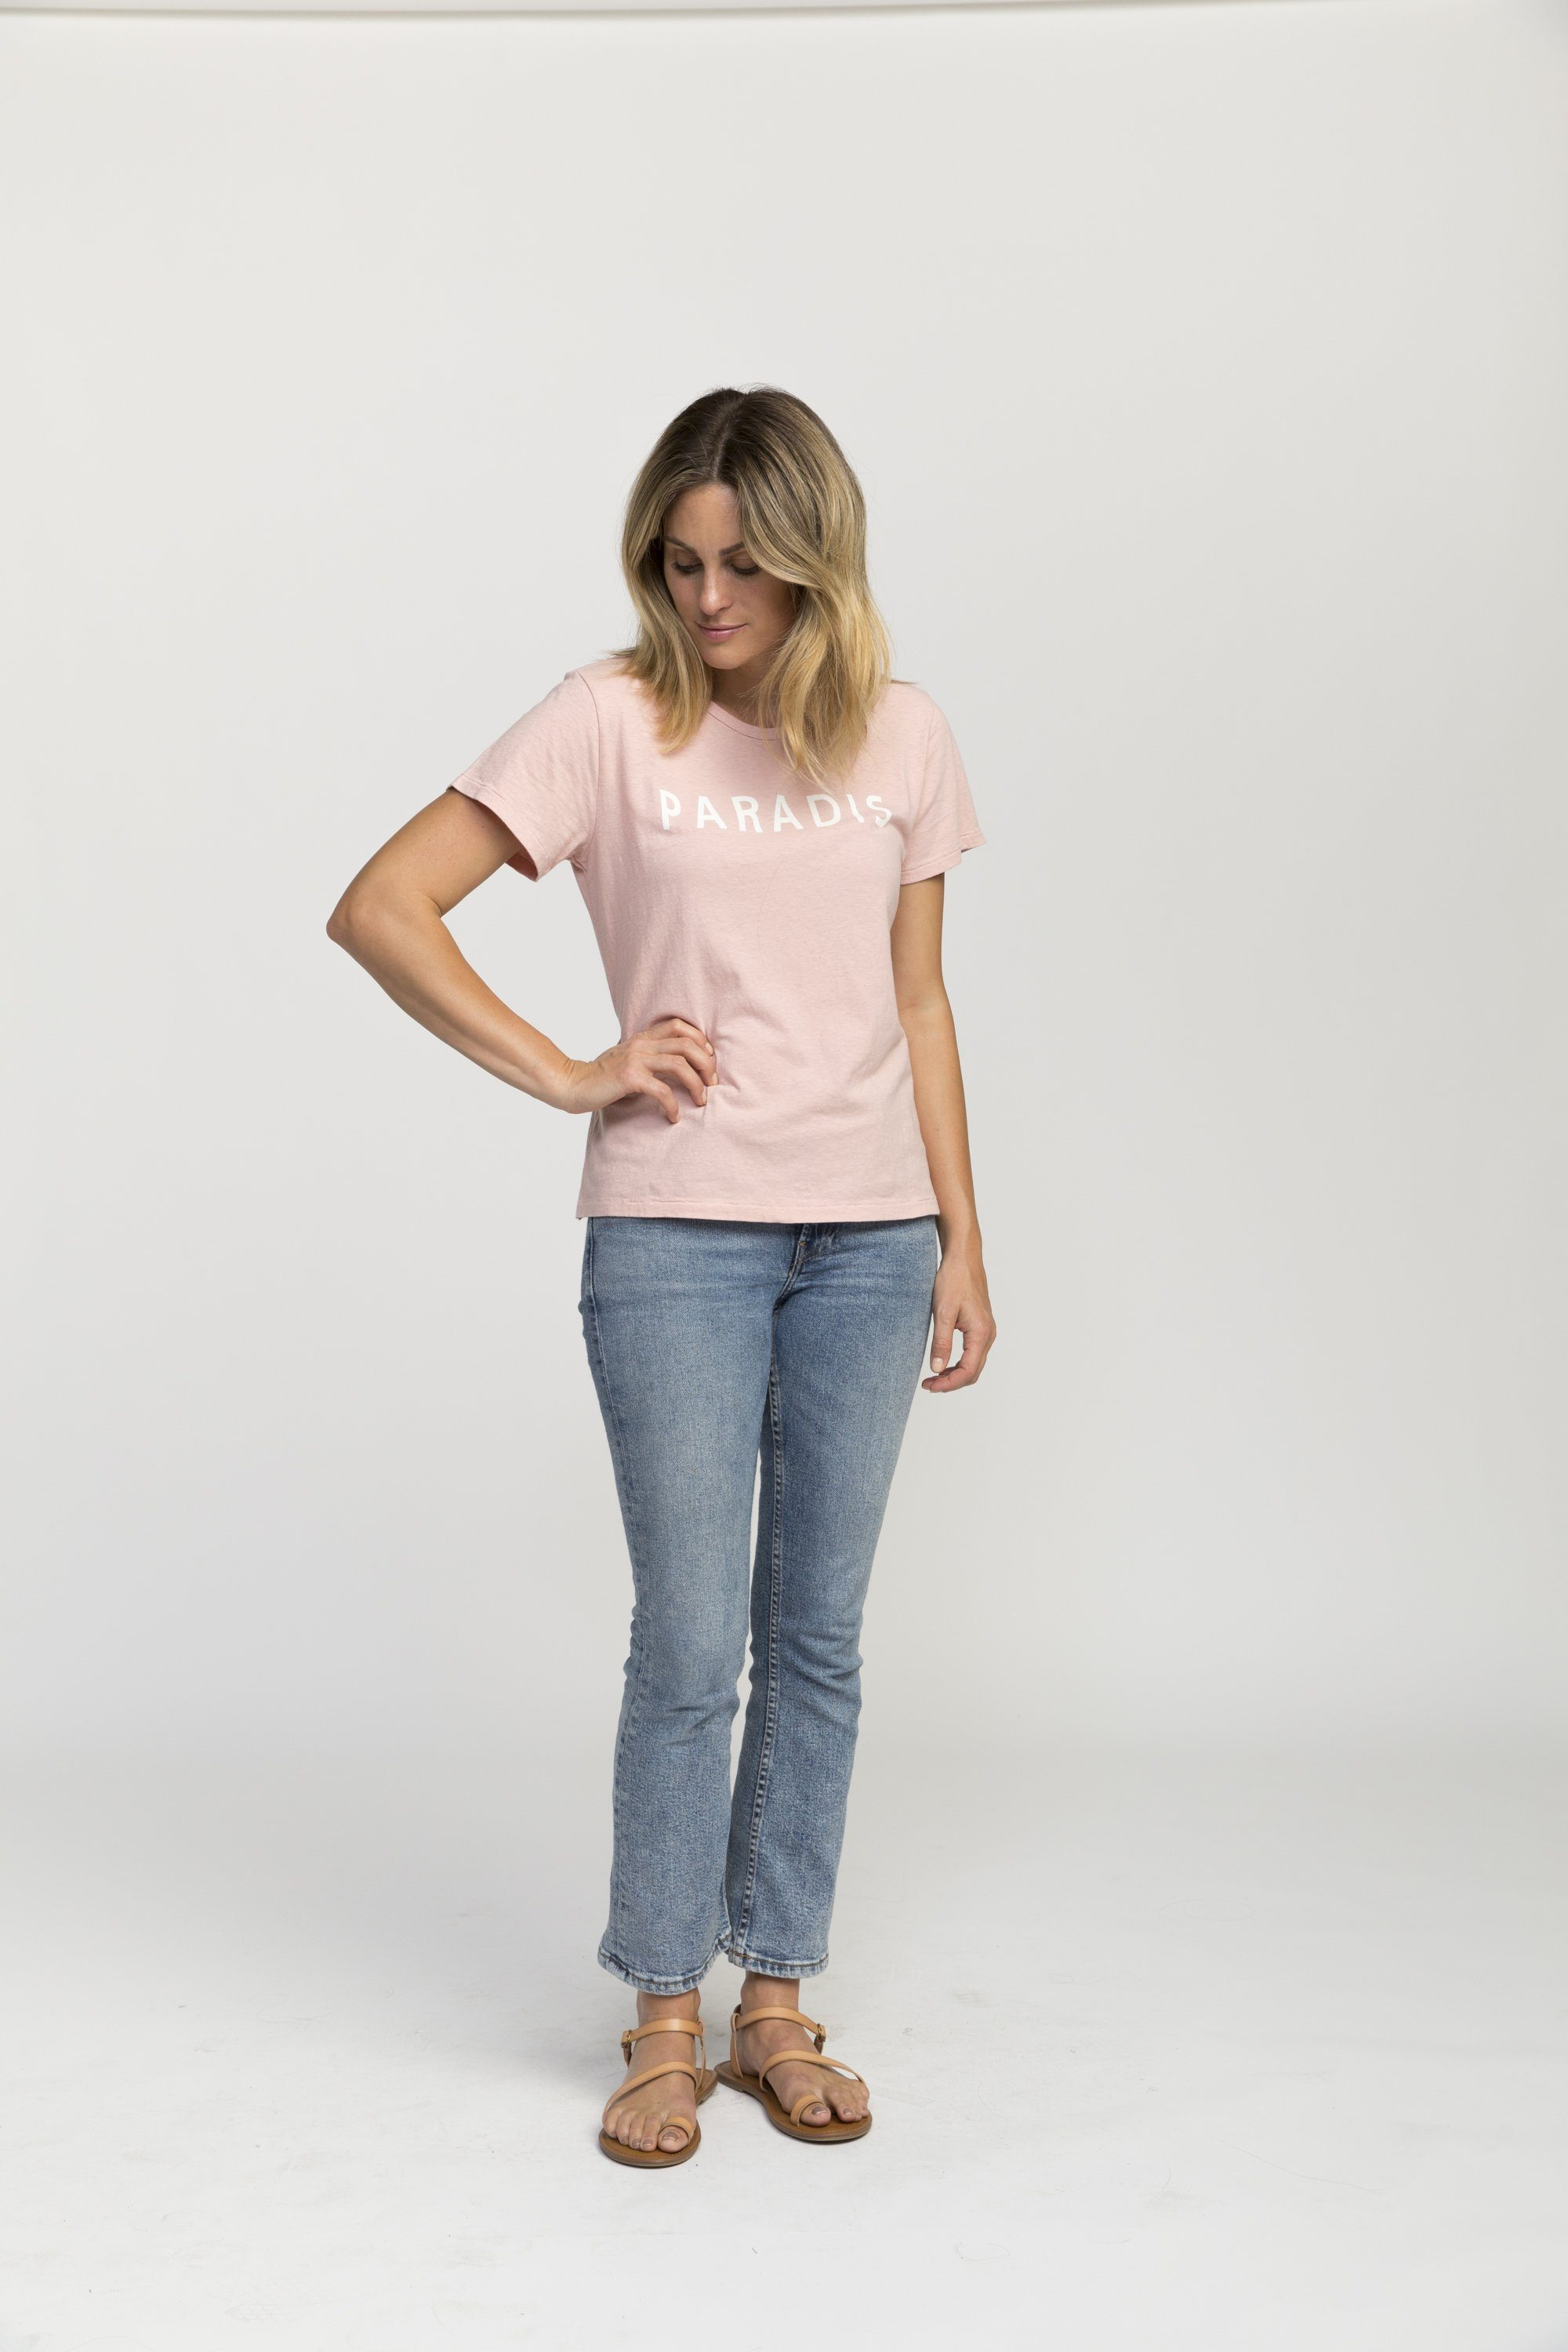 Jett T-shirt BLUSH PARADIS by Trovata - 4